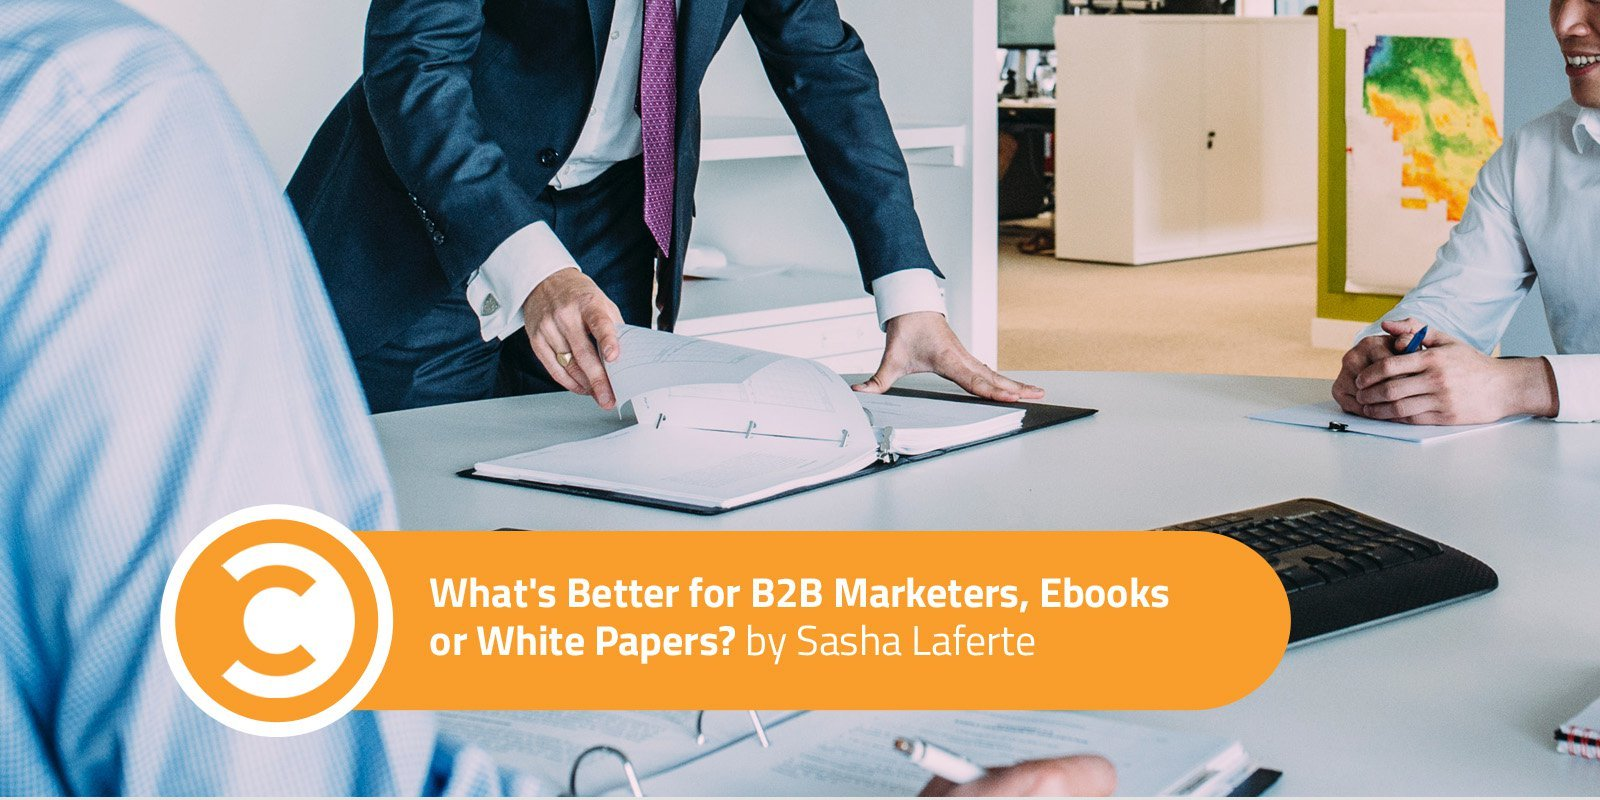 What's Better for B2B Marketers, Ebooks or White Papers?